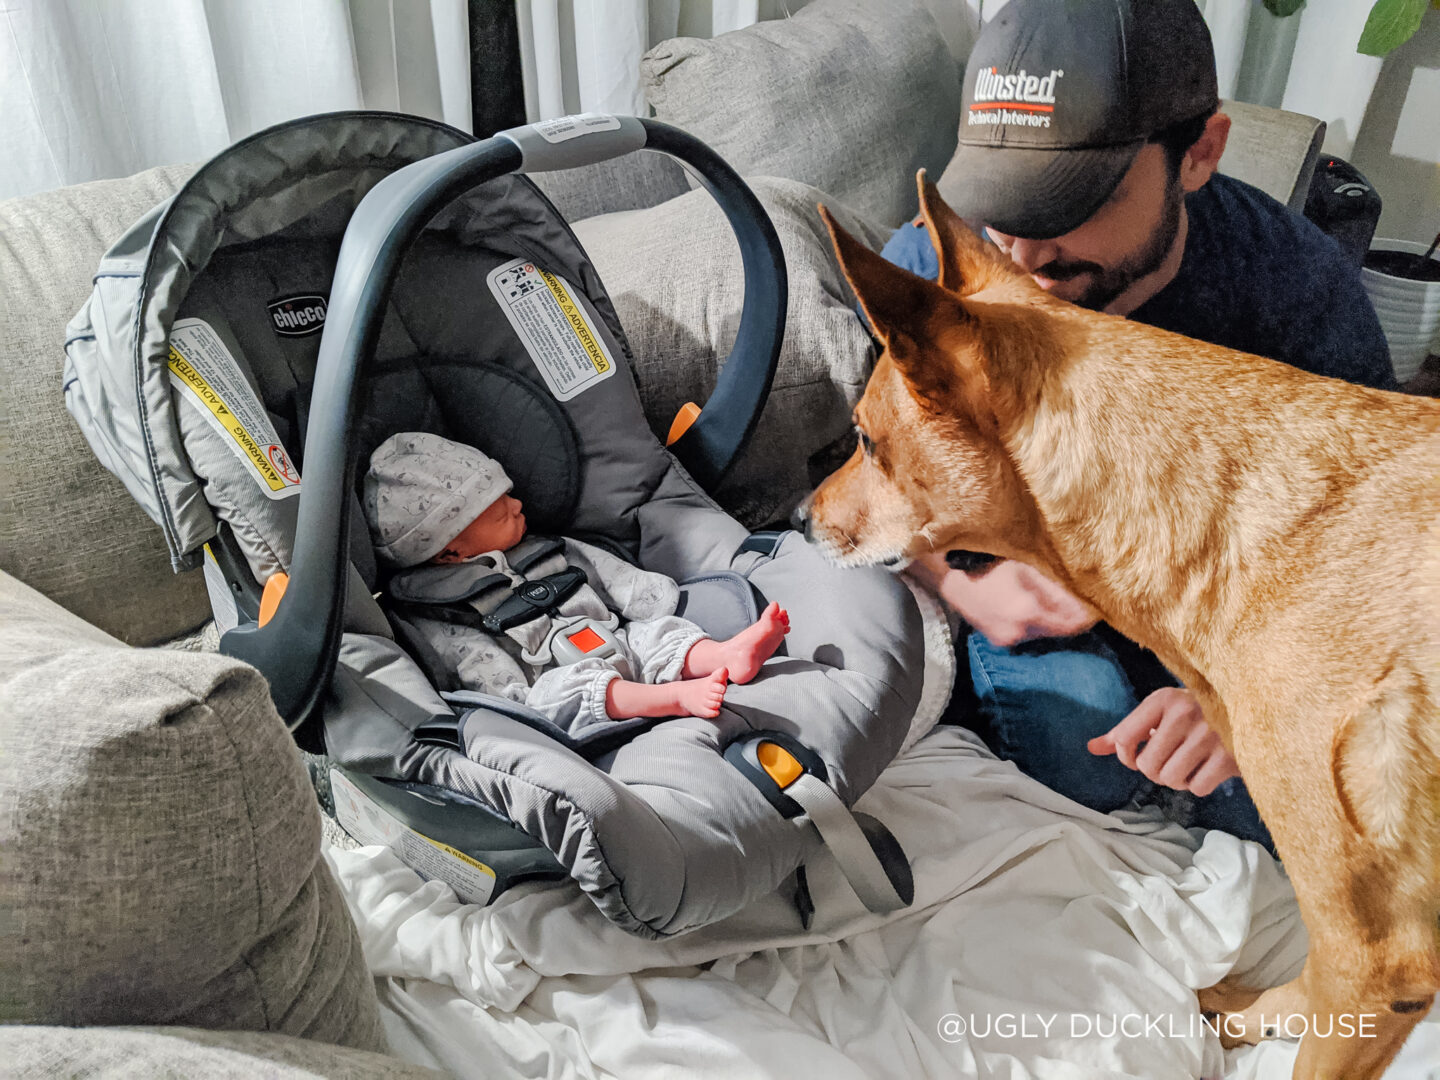 bringing baby home from hospital to meet dogs